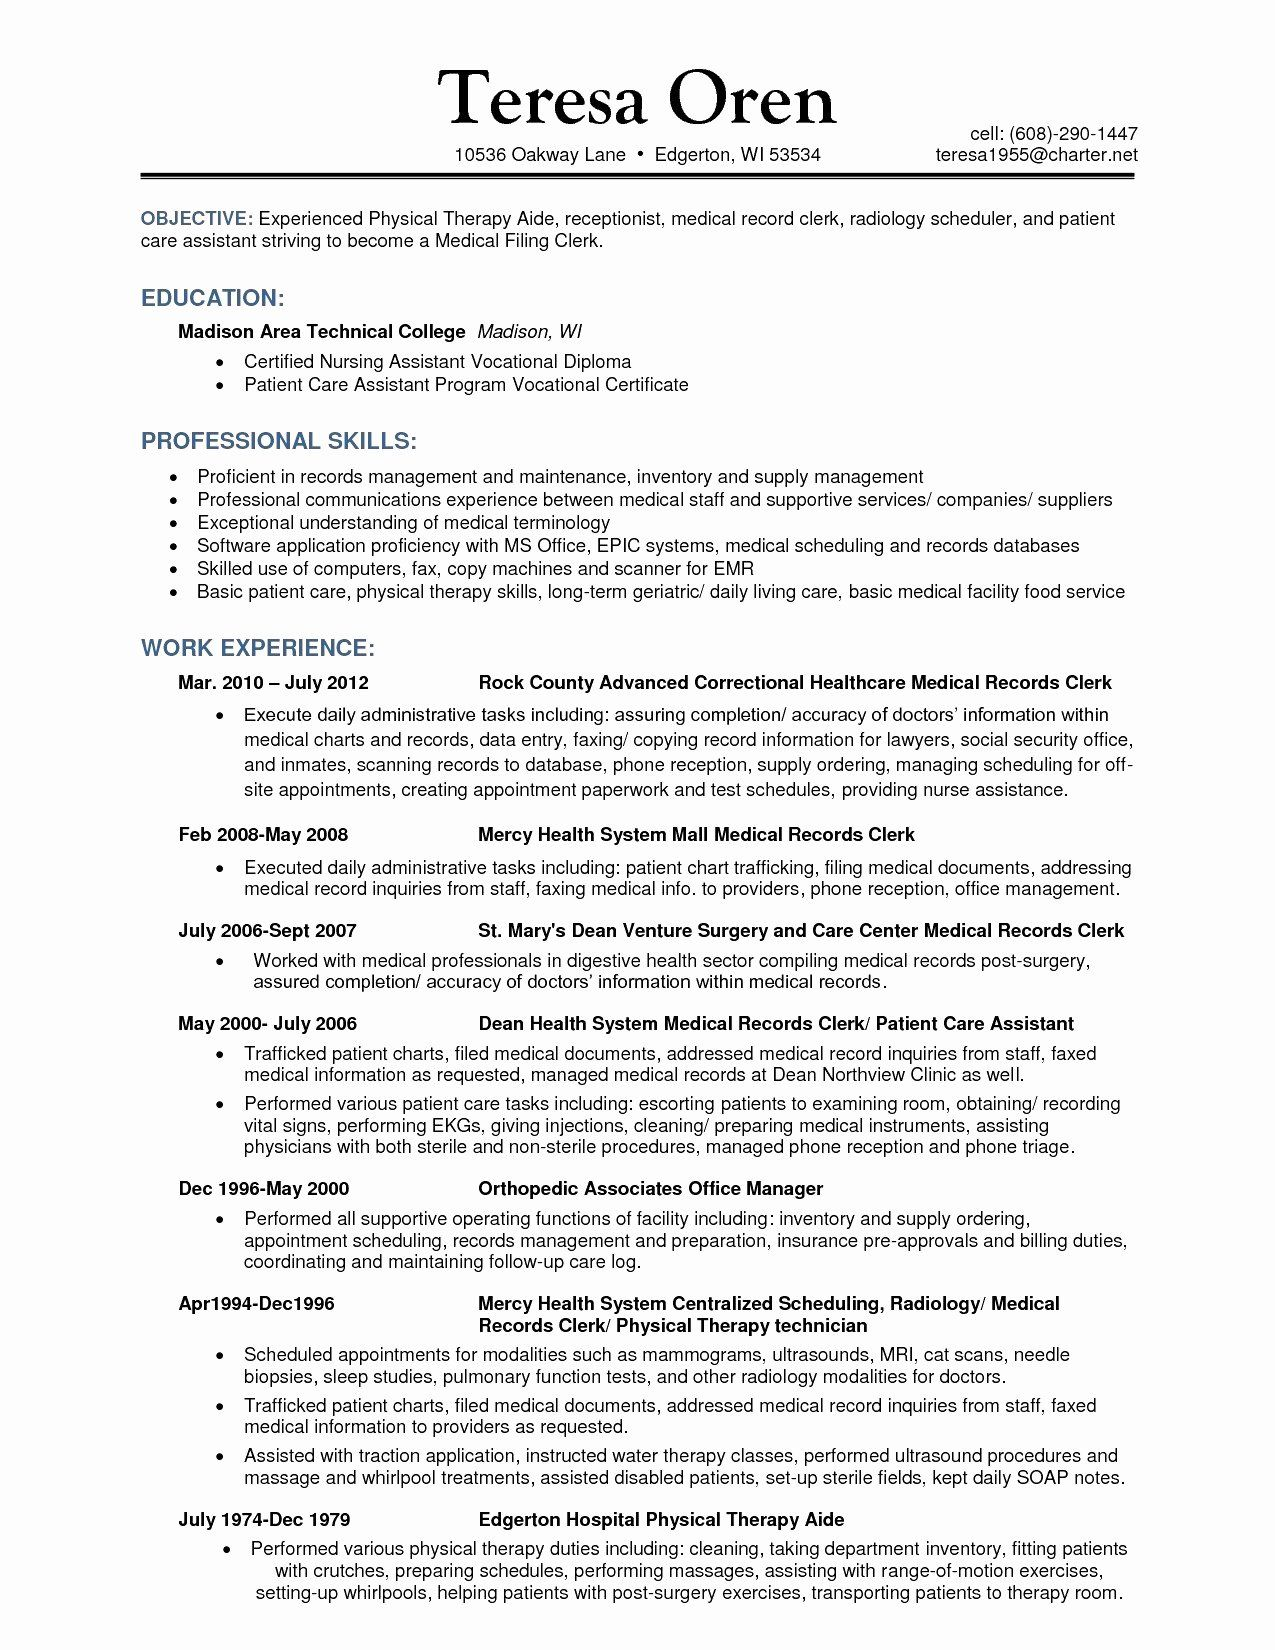 Physical therapist assistant Resume Examples Best Of 12 13